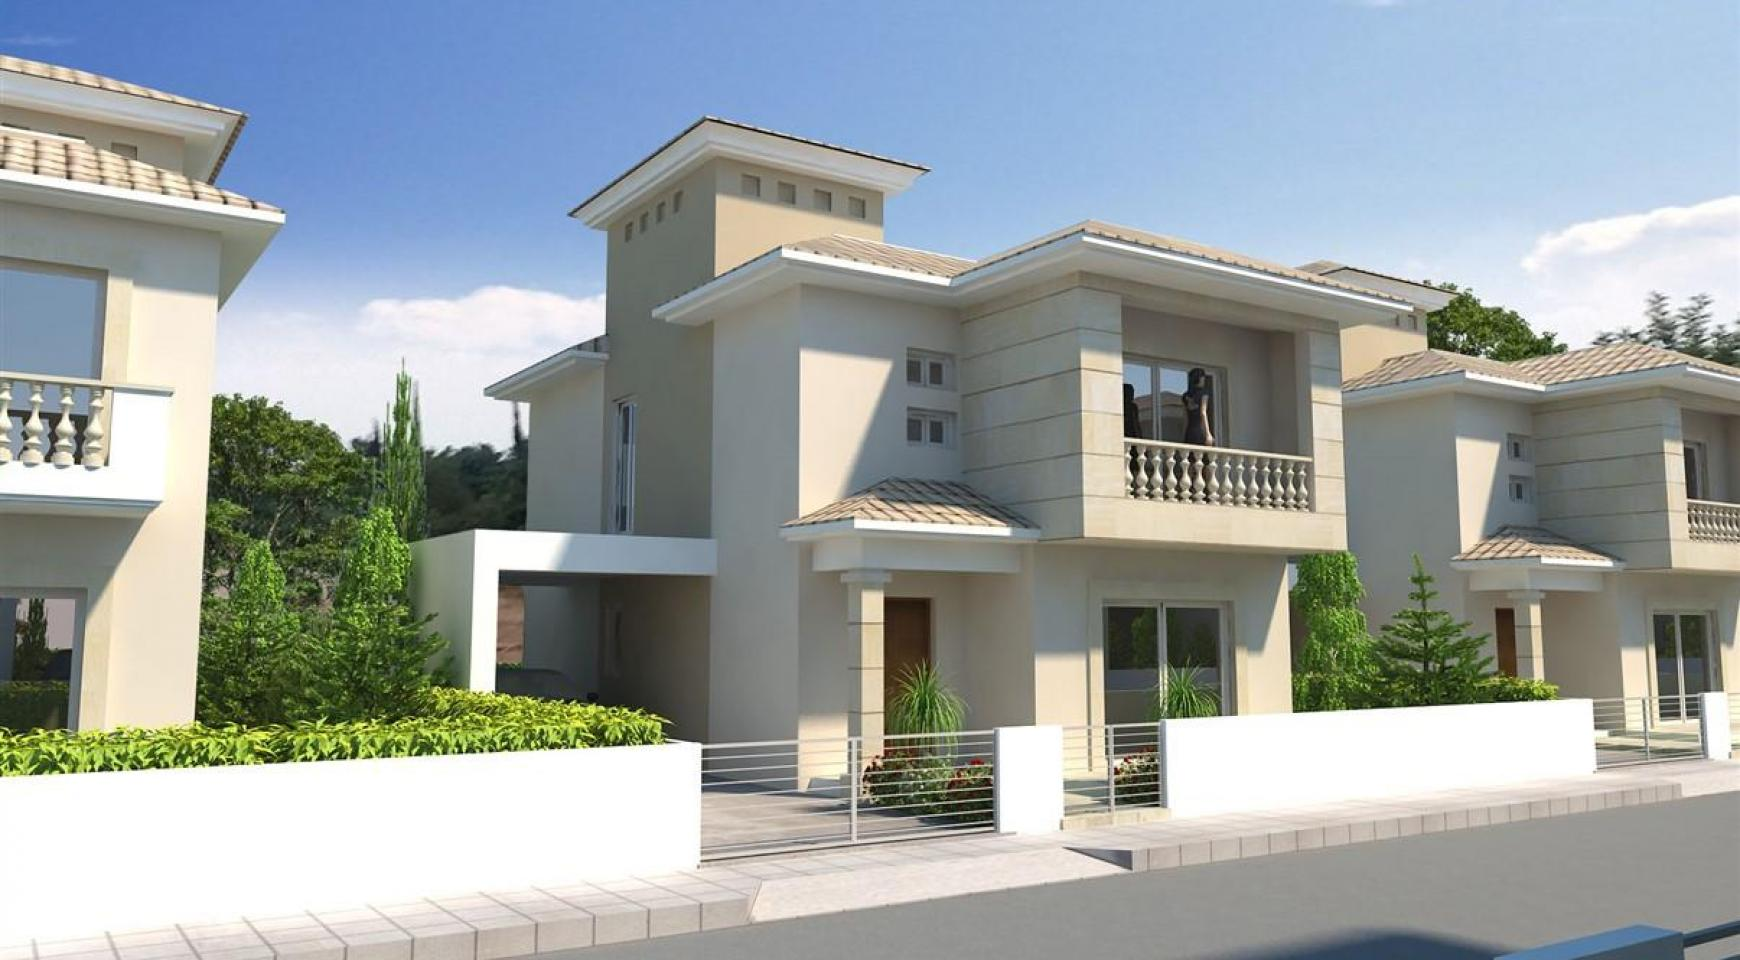 3 Bedroom Villa in a New Project - 3